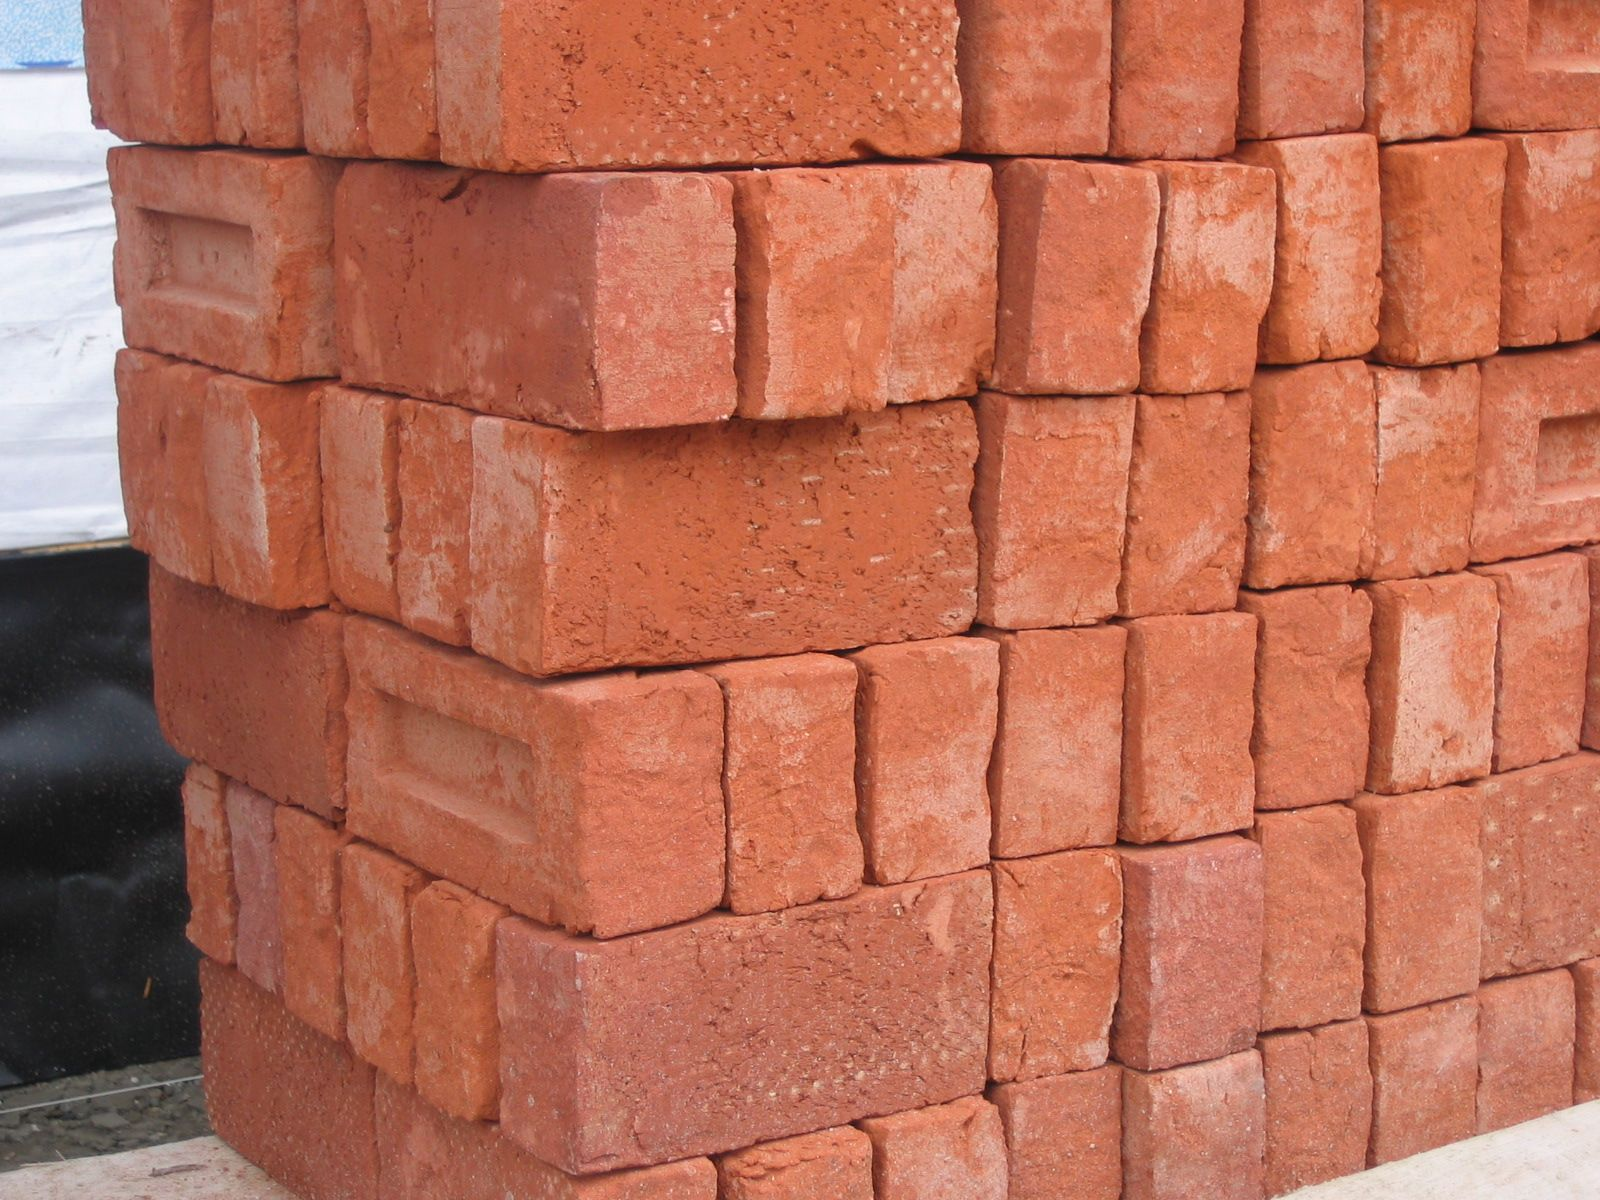 Pile_of_bricks_2005_Fruggo.jpg